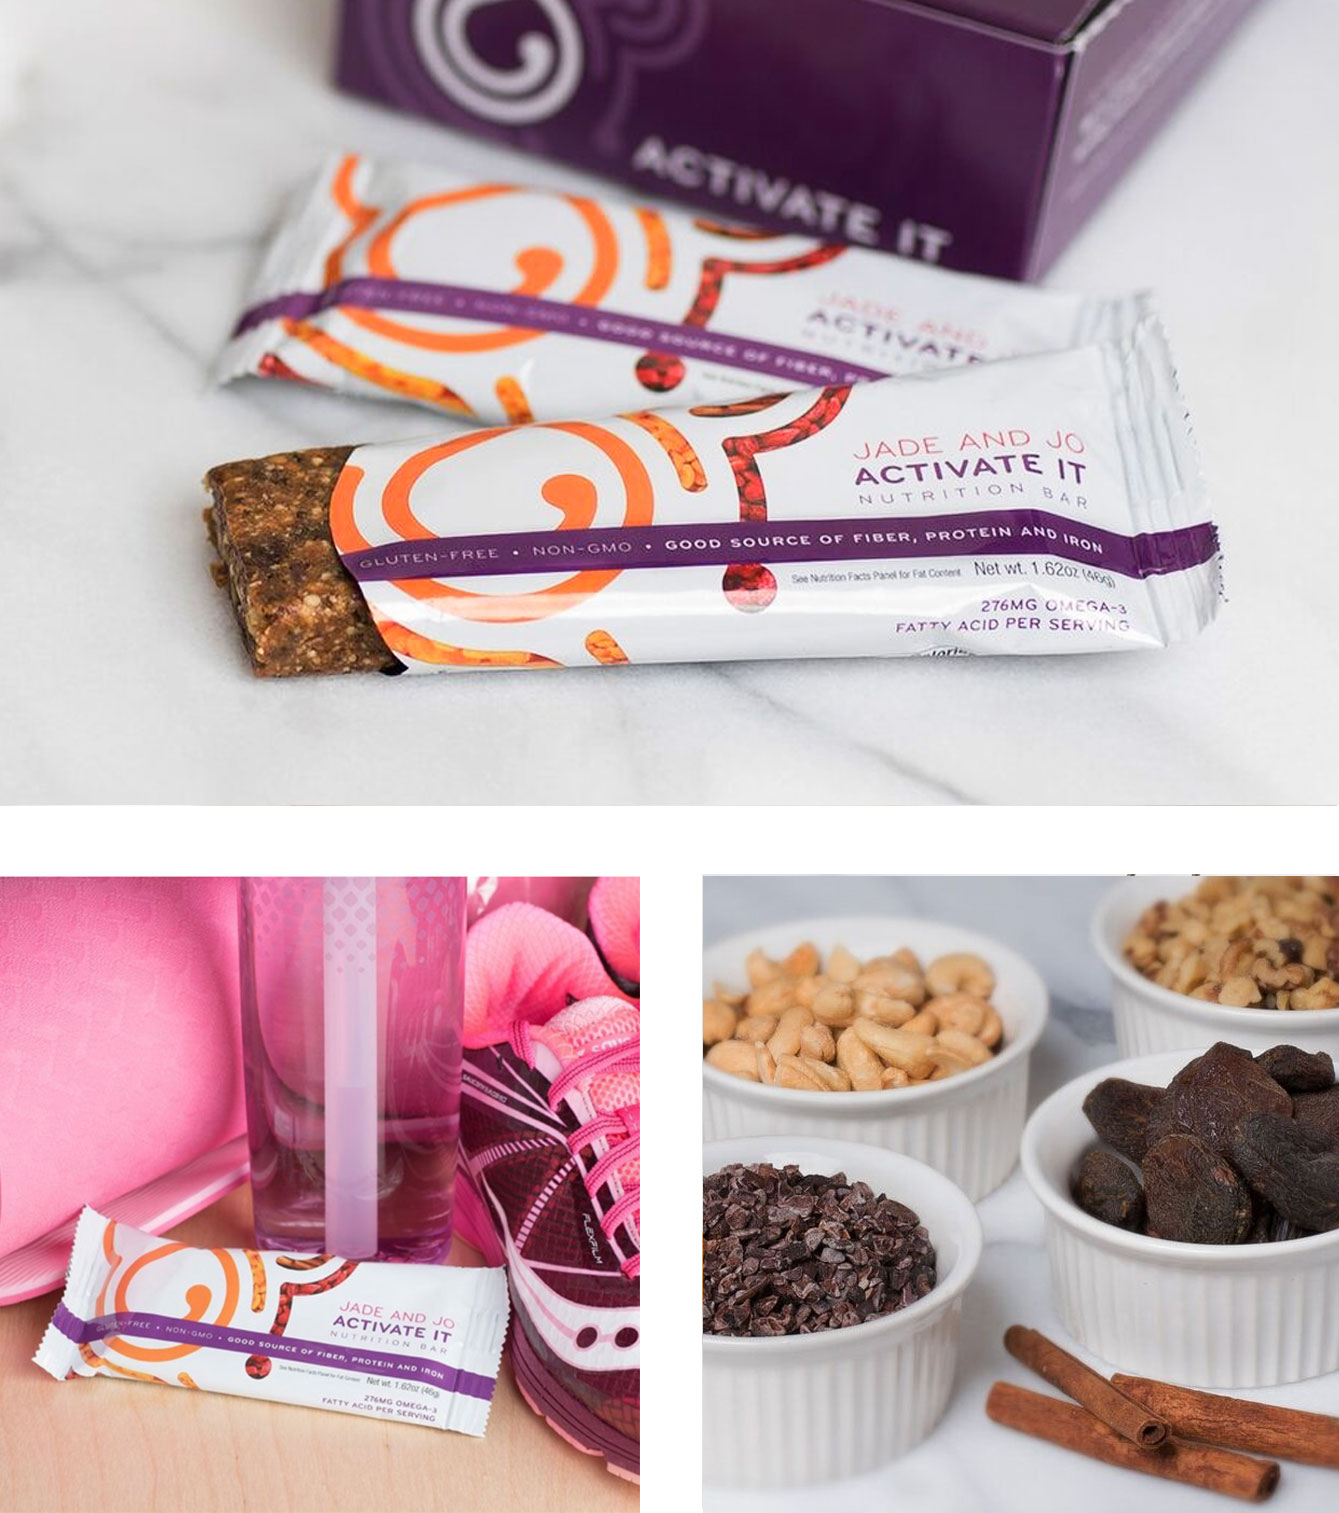 ACTIVATE ITNUTRITION BARS - Jade and Jo Activate It NutritionBars have combined Eastern andWestern nutrition philosophies, andall the right ingredients, to providea nourishing grab-and-go tonic thatsupports your body's reproductiveenergies.